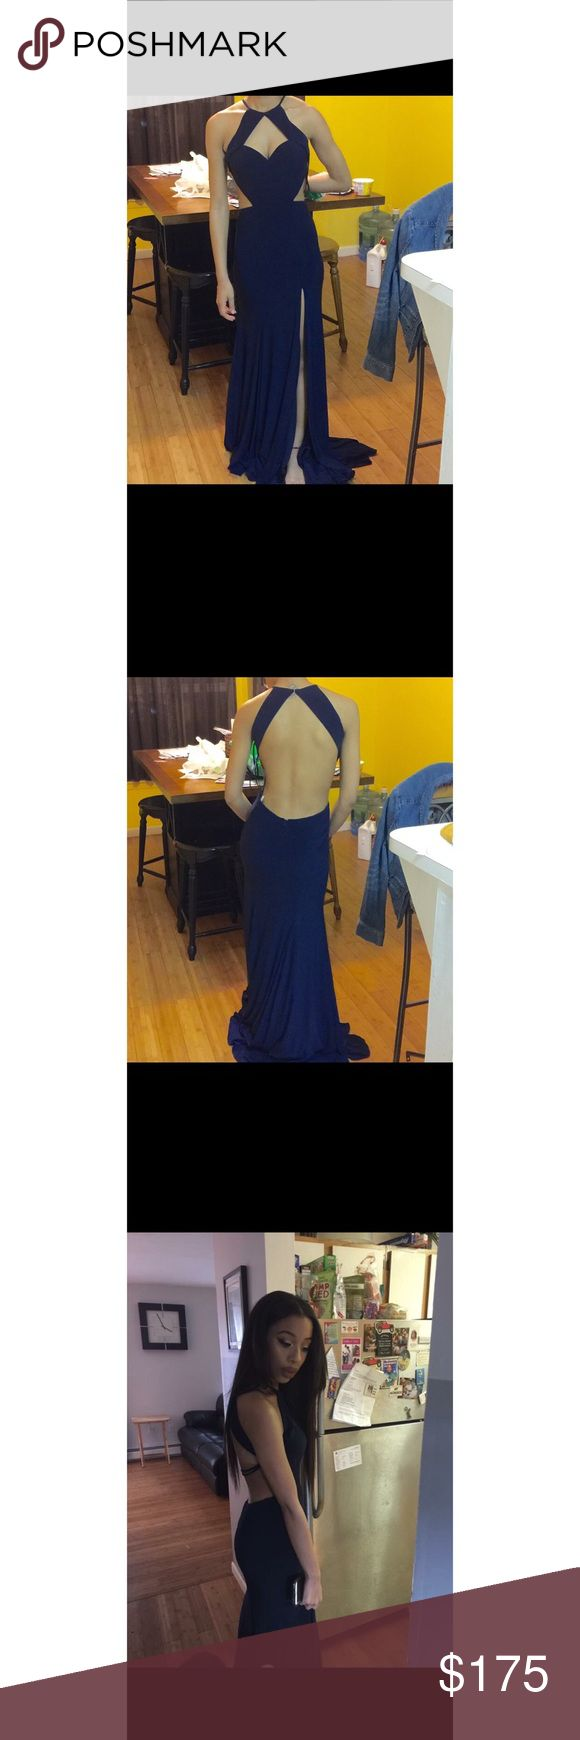 Navy Blue Cutout Prom Dress Cut out prom dress worn once. Fitted and dry cleaned. Dresses Prom